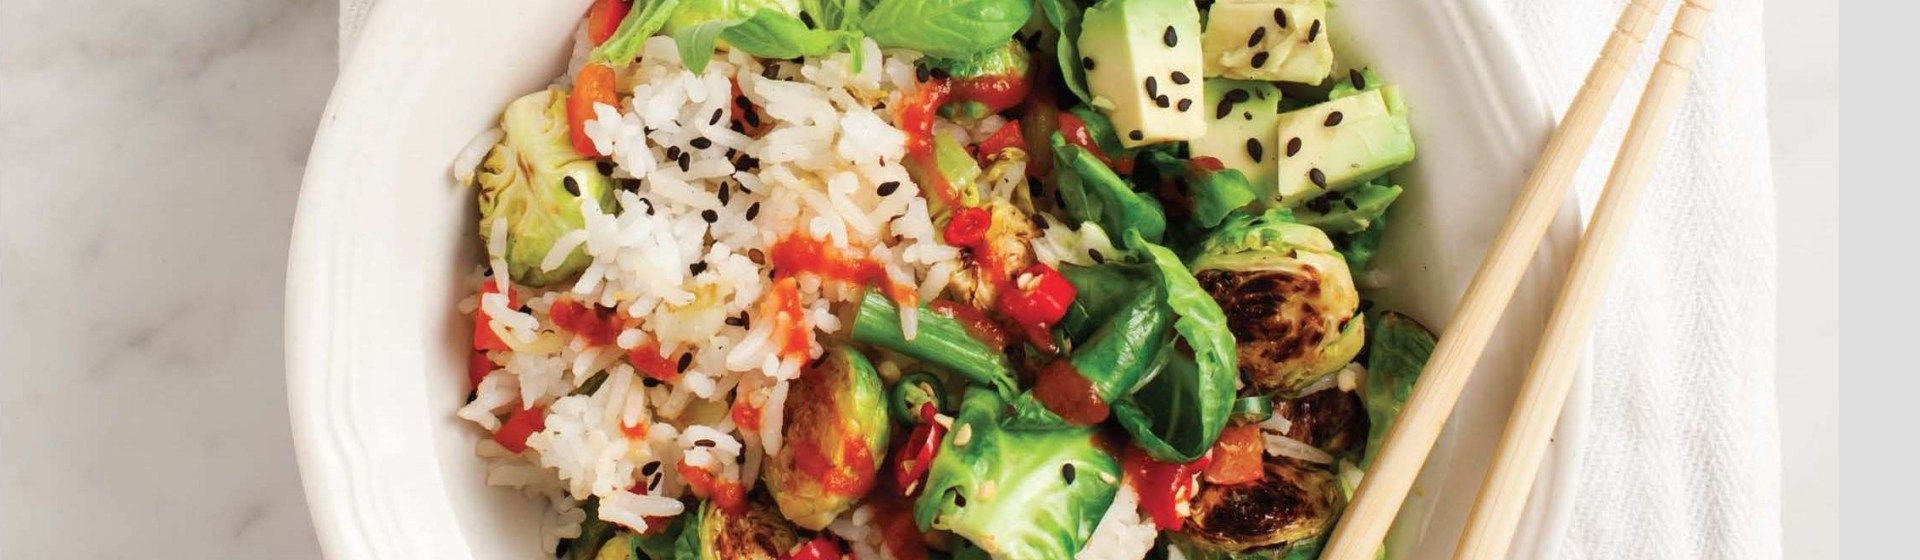 How To Make Coconut Rice With Brussels Sprouts – Food Republic